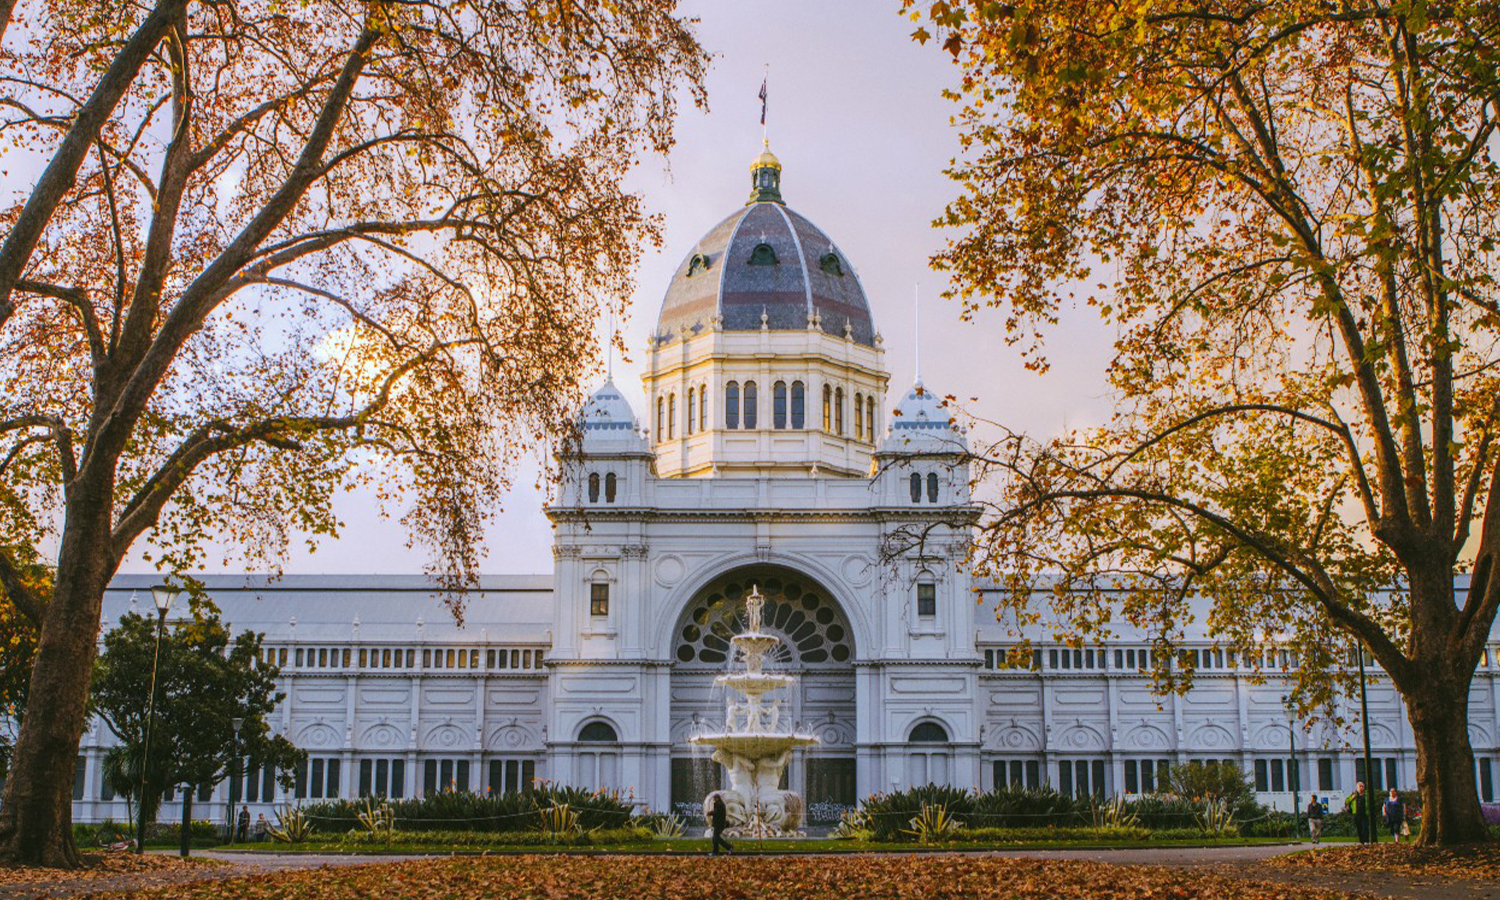 Royal exhibition building in autumn